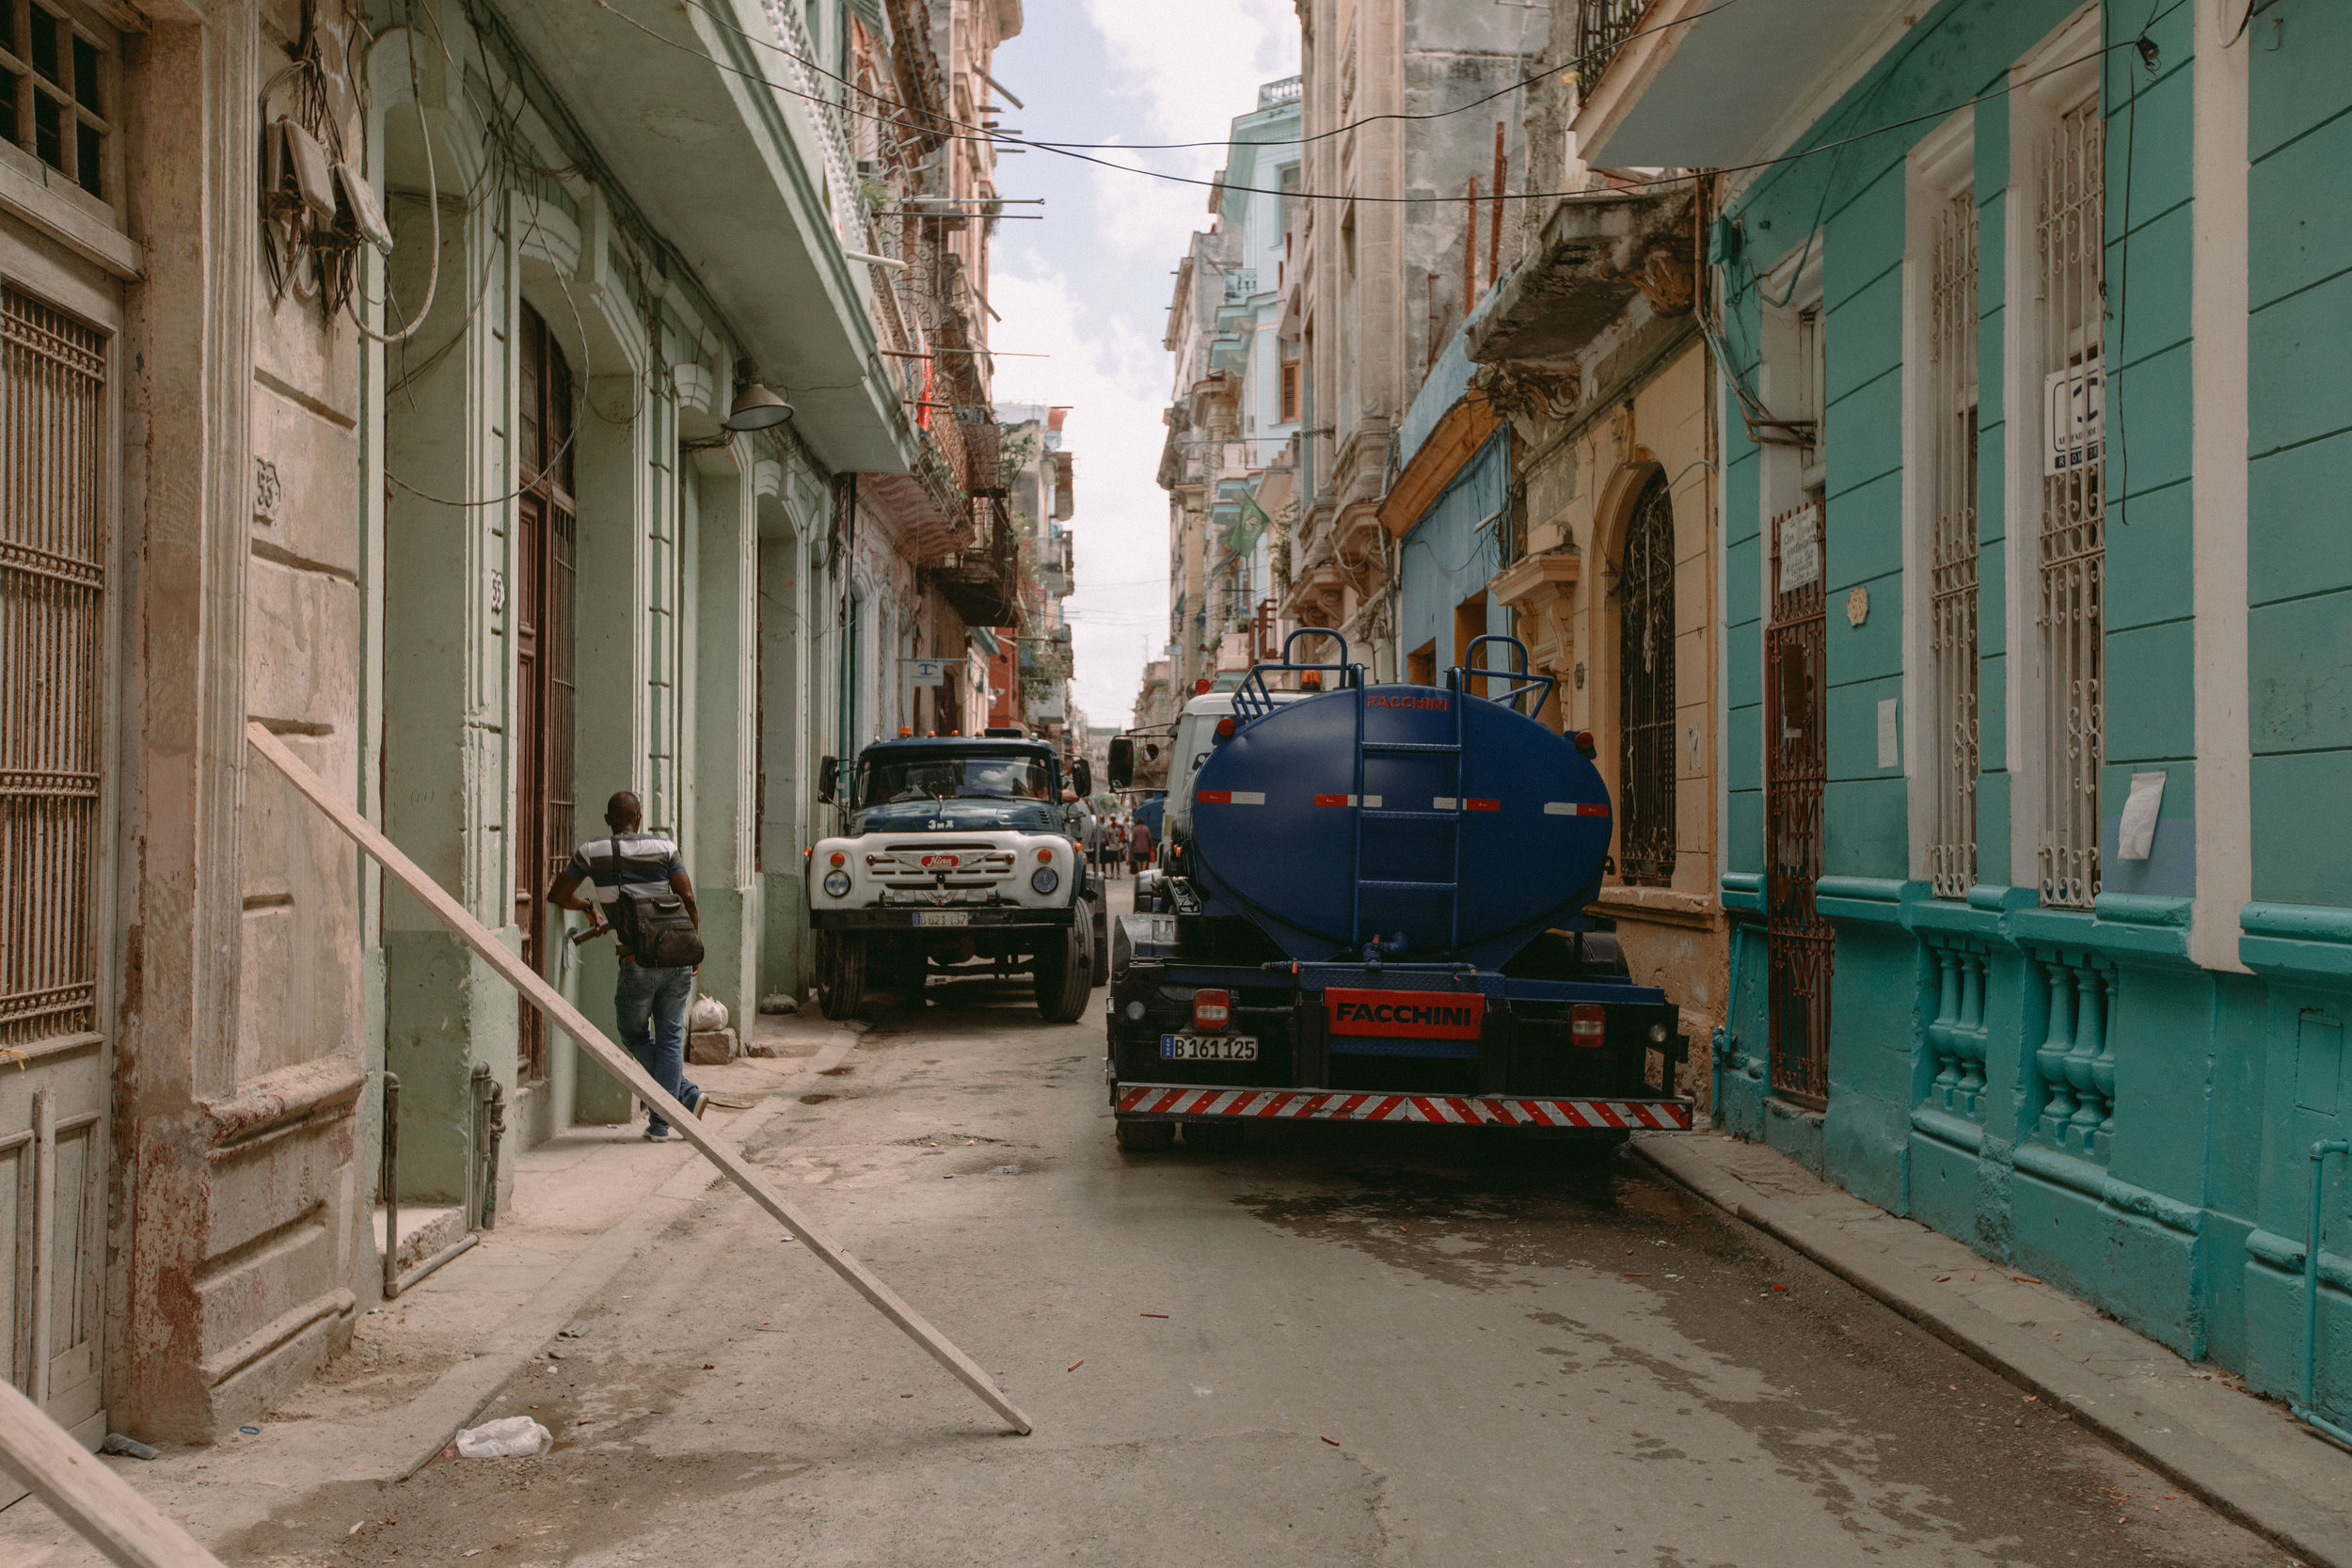 cuba_selects_all_lowres-7695.jpg